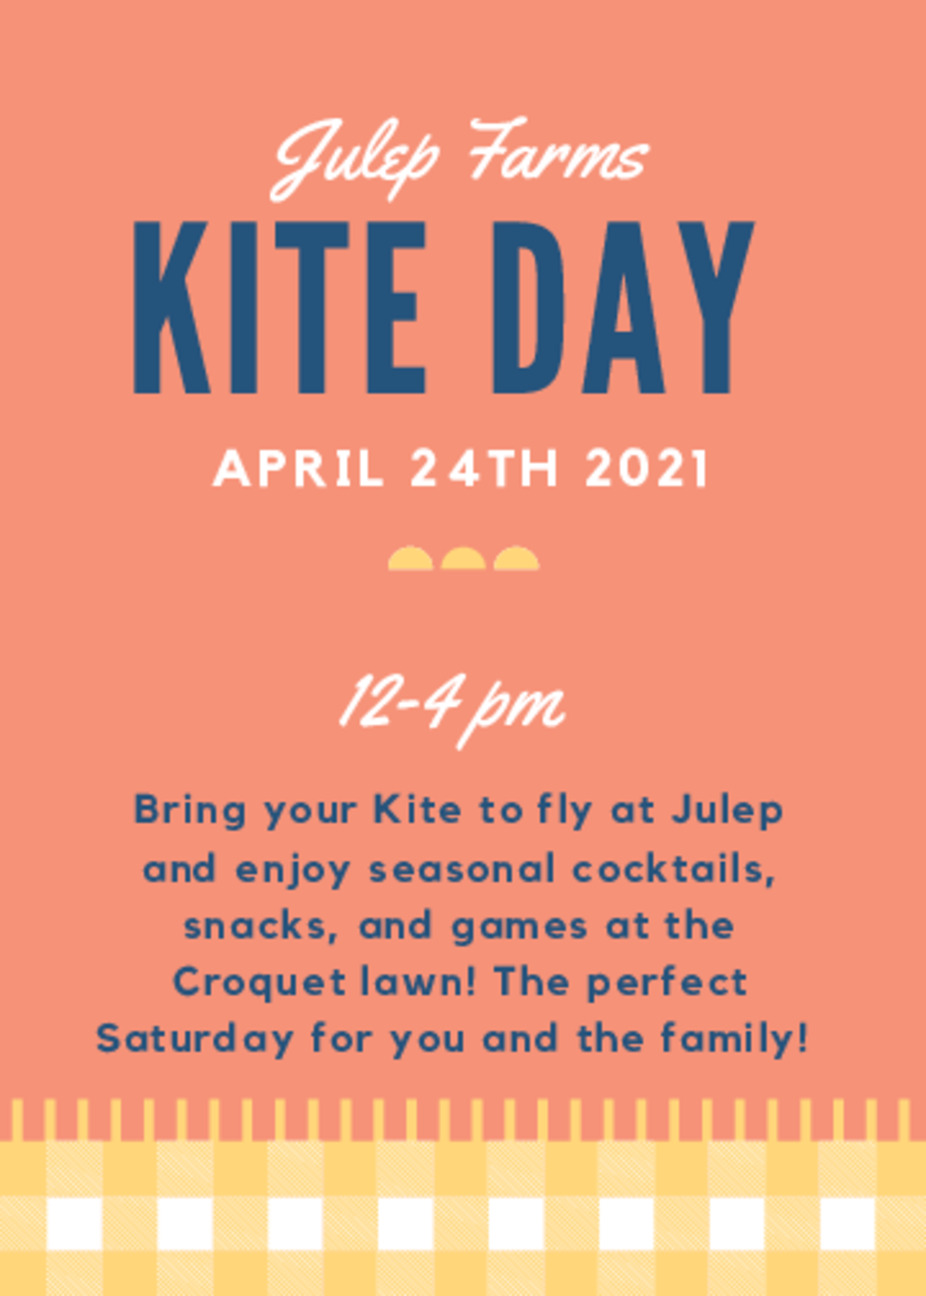 Kite Day at Julep Farms! event photo